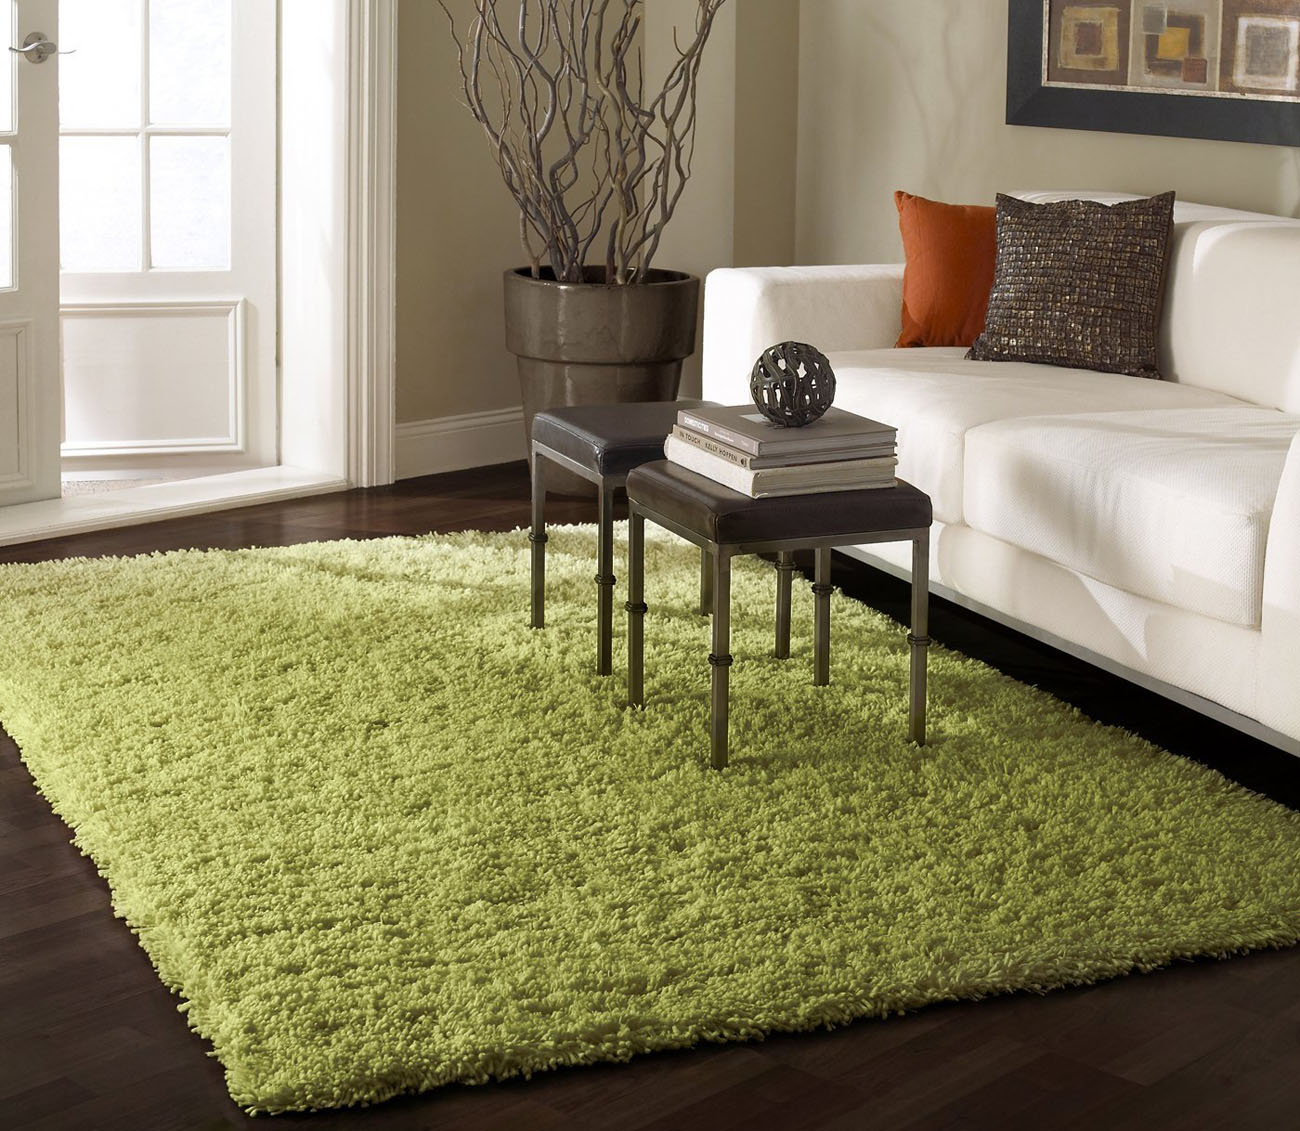 Create Cozy Room Ambience With Area Rugs | iDesignArch | Interior ...